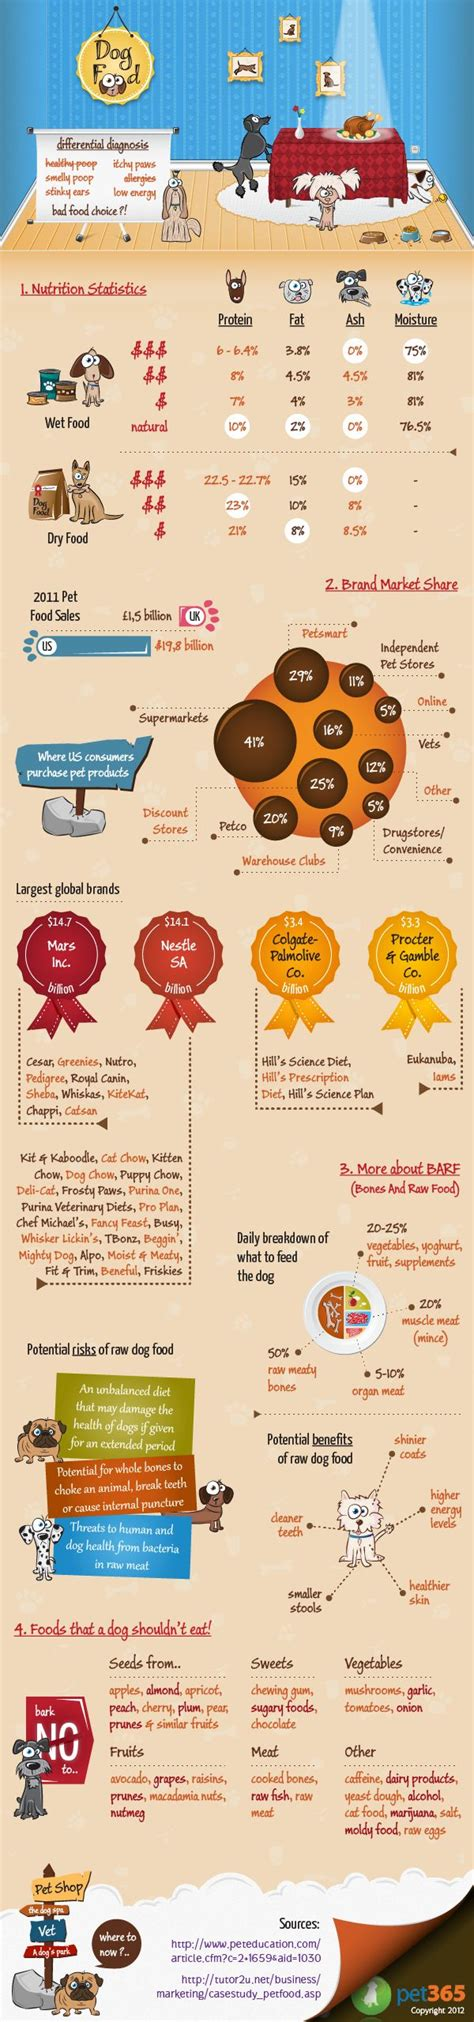 top ten food trends 2013 facts figures and the future food infographic a world of dog food gives facts and